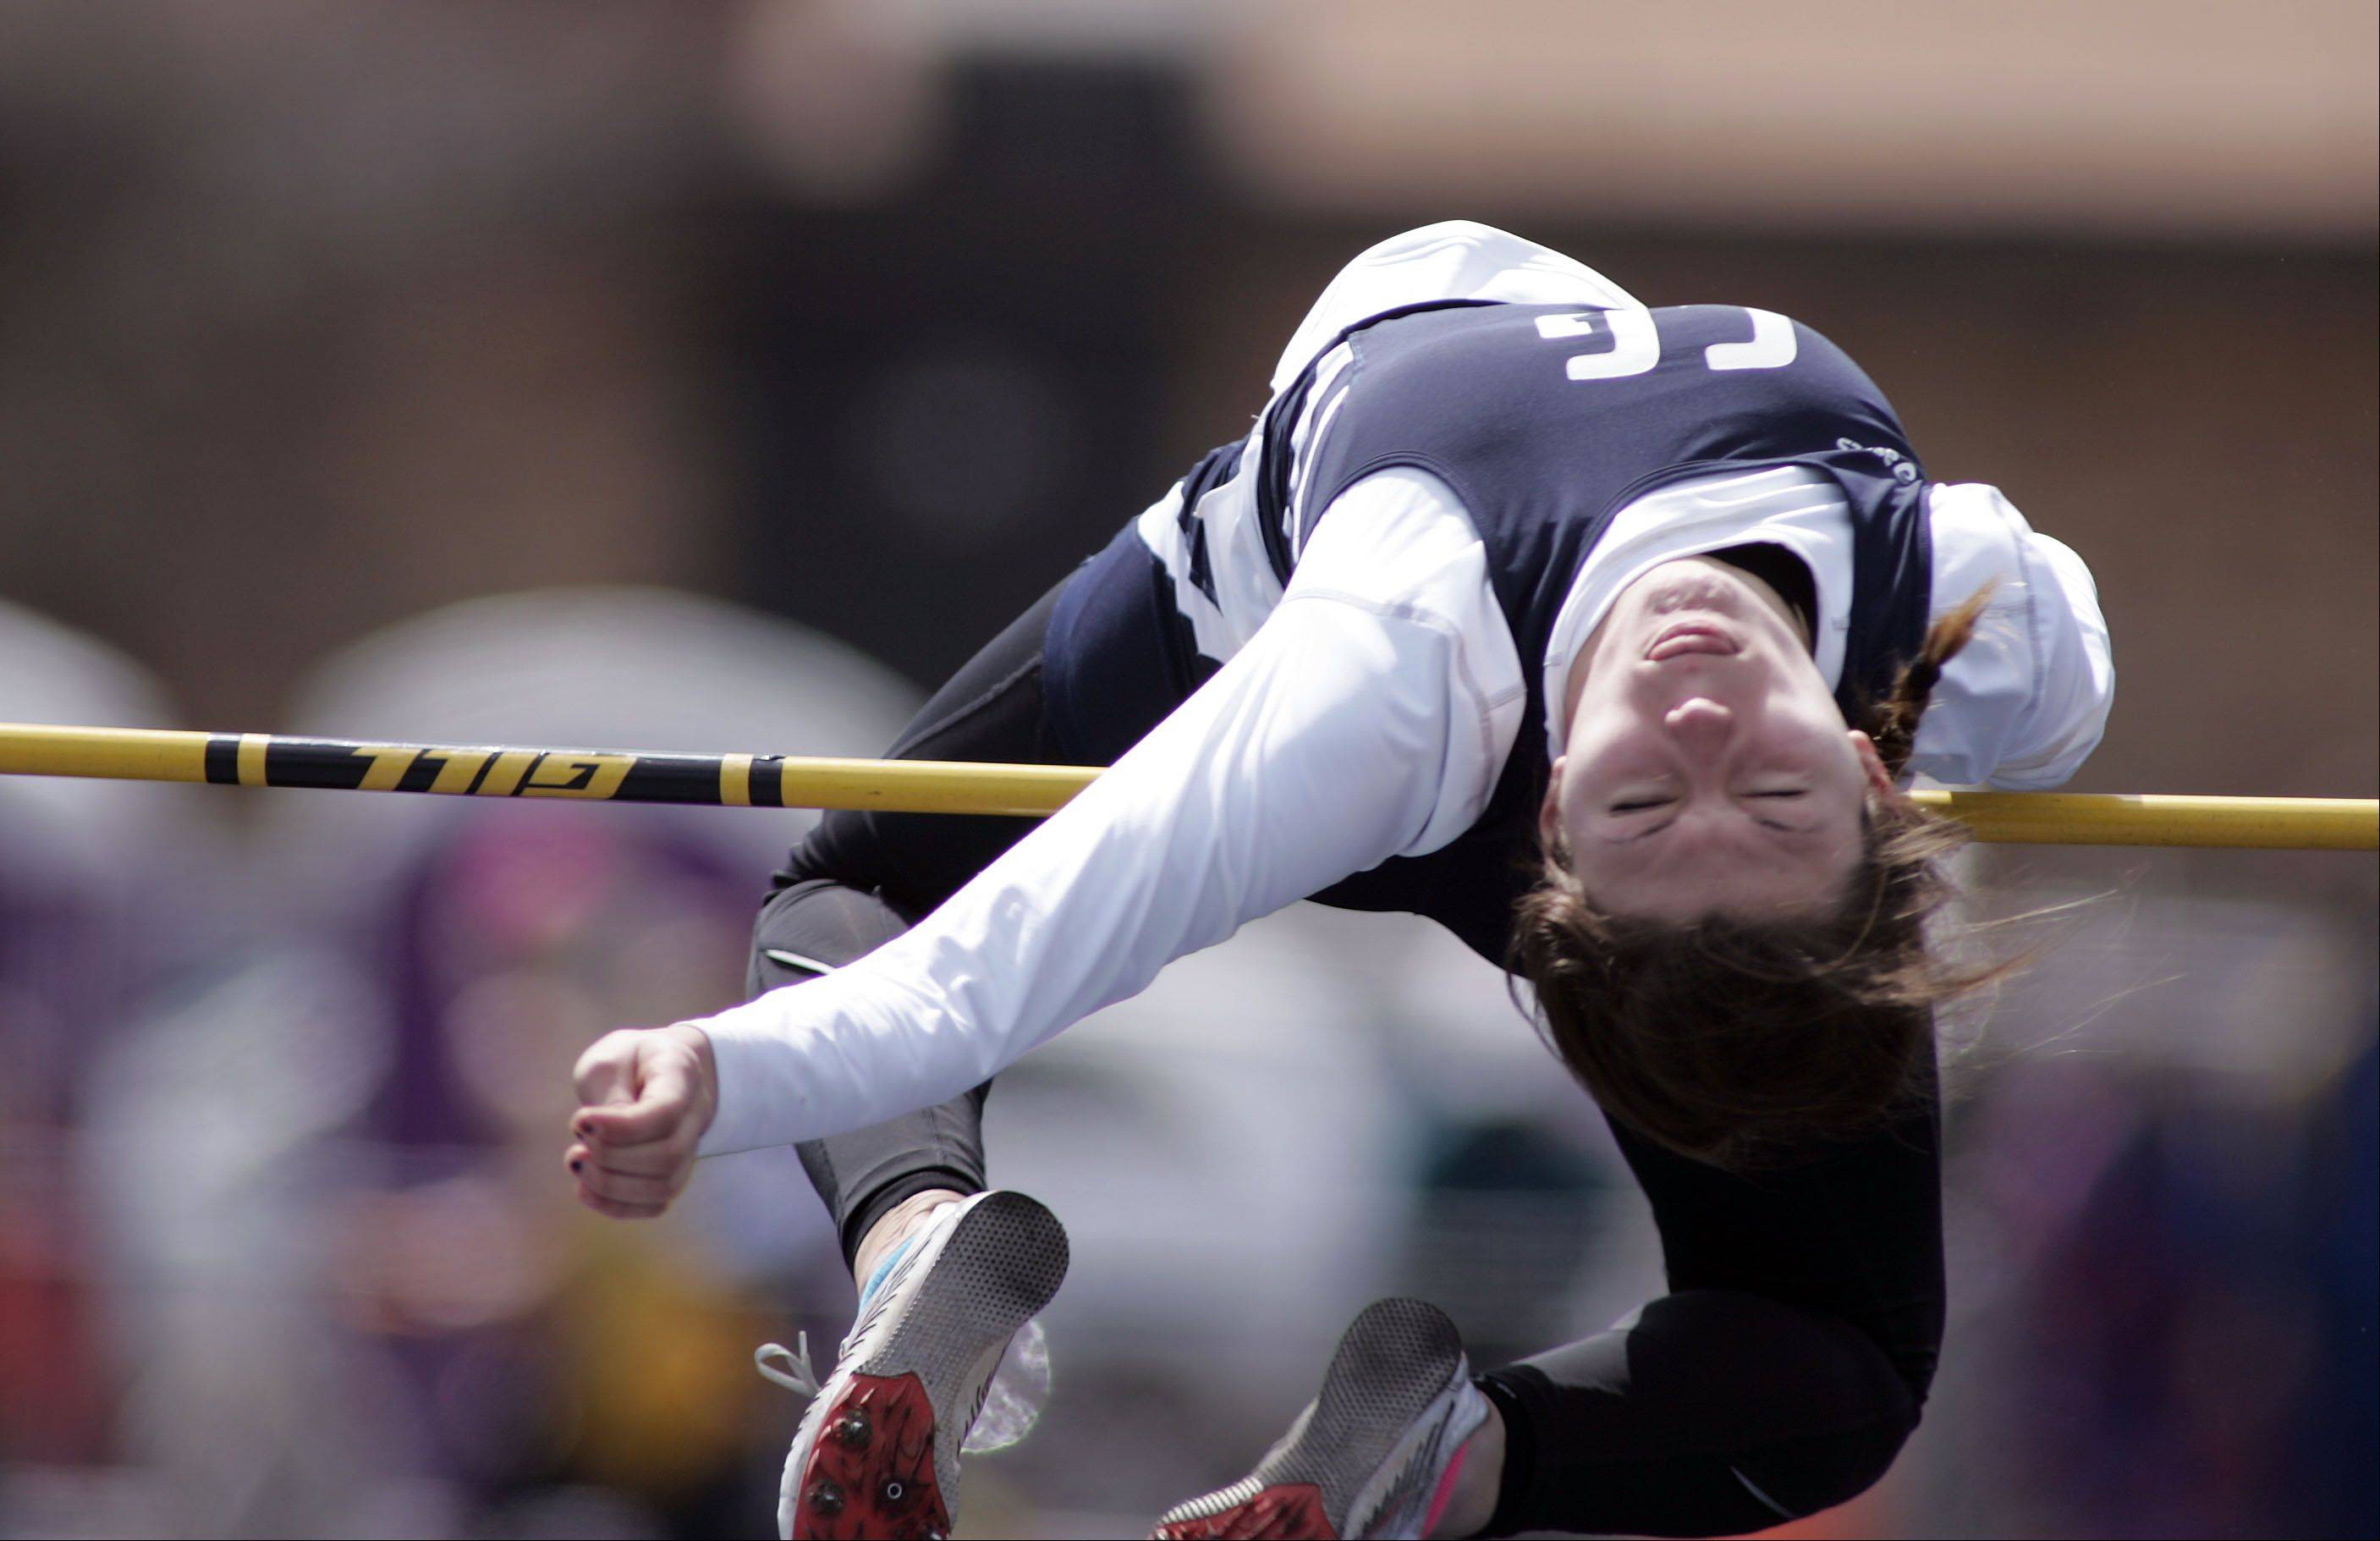 Cary-Groves Erik Sternard competes in the high jump during the McHenry County boys and girls track meet Saturday at Cary-Grove High School in Cary.